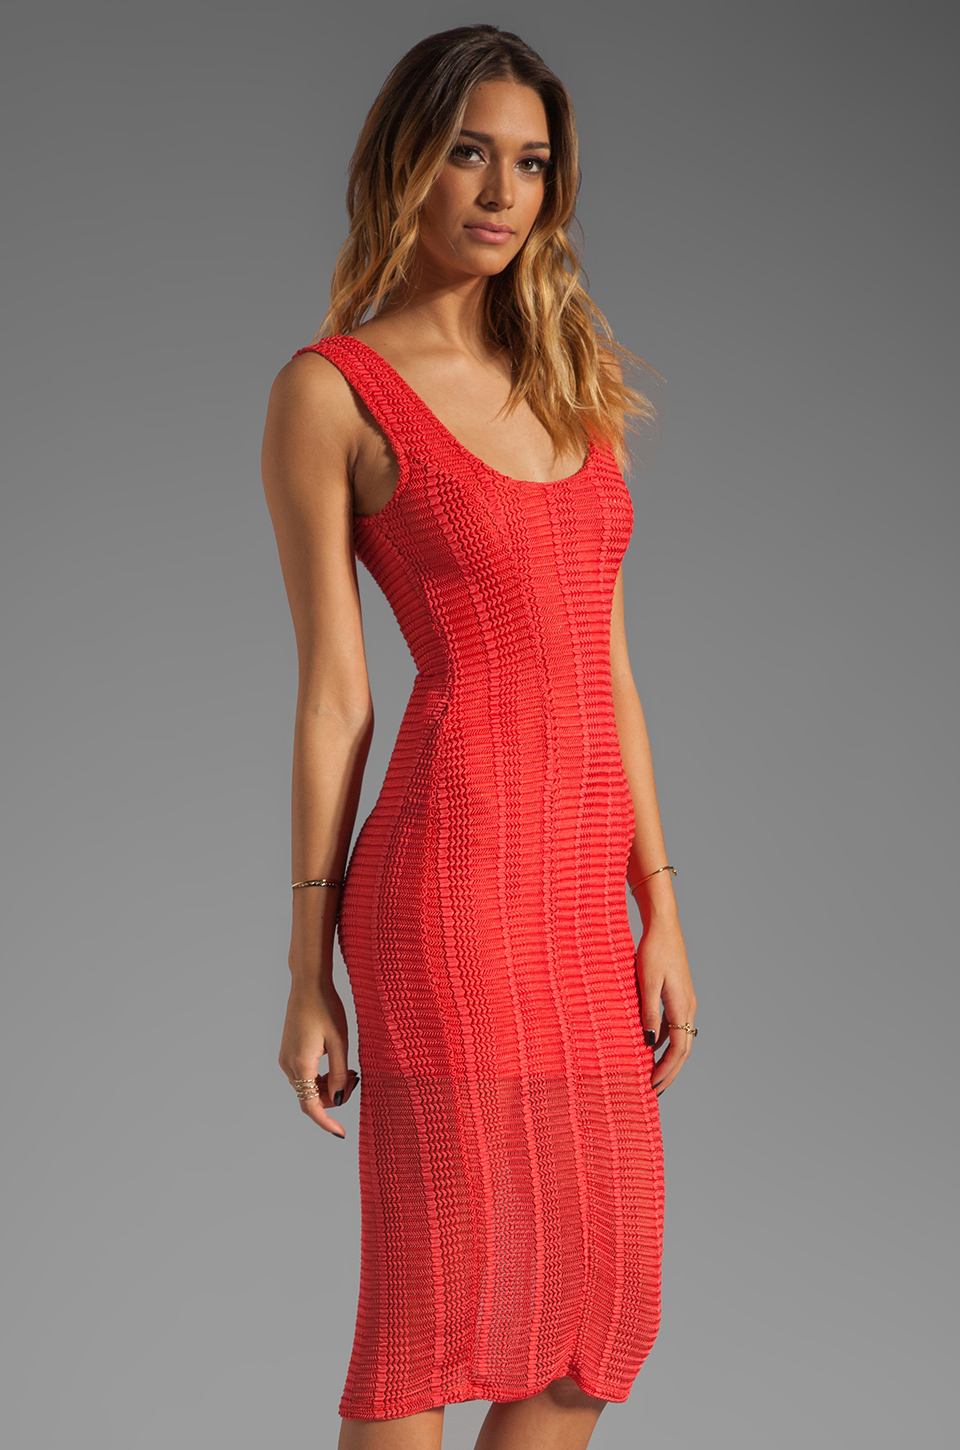 Lovers + Friends Lovers + Friends True Love Dress in Tangerine Stretch